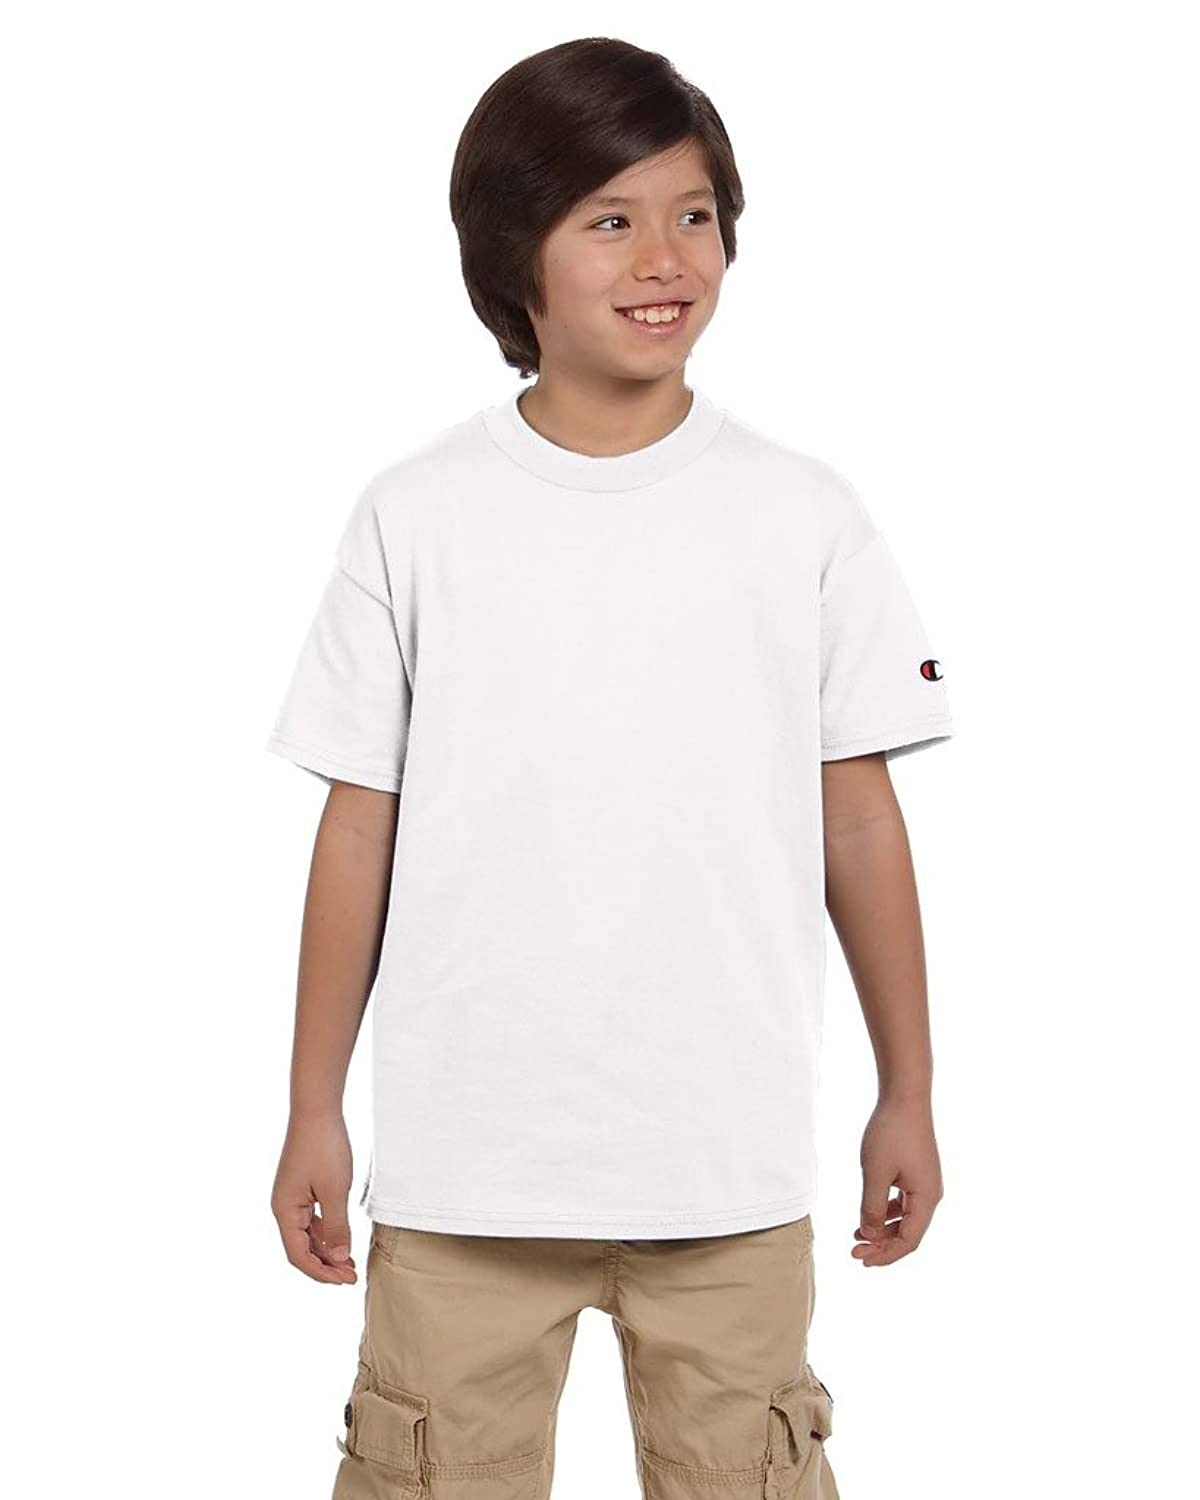 Top Champion Youth 6.1 Oz. Tagless T-Shirt, White, S hot sale